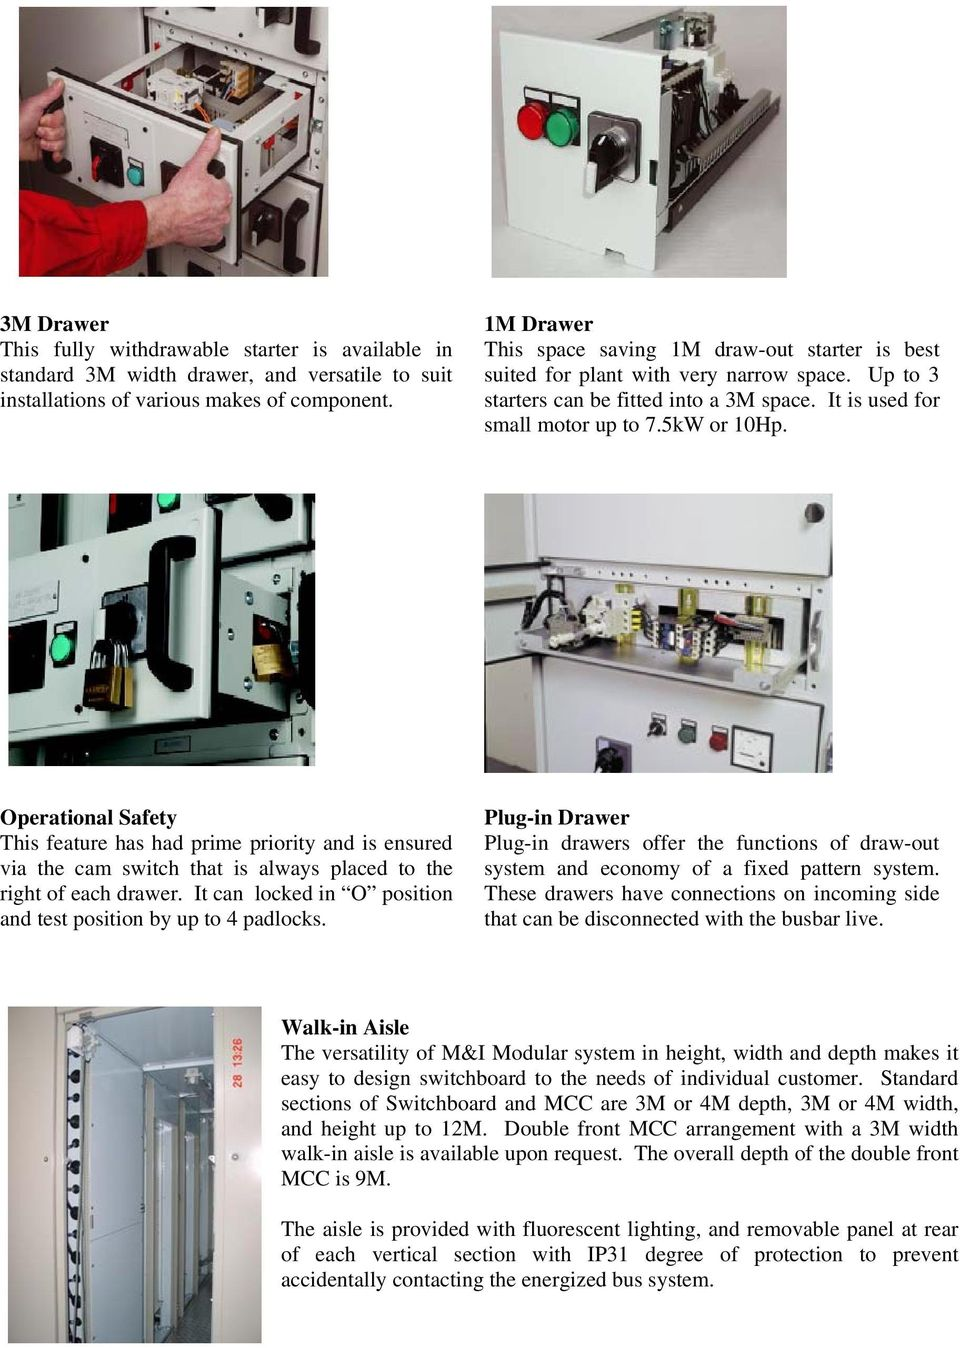 Low Voltage Switchboard Pdf Mcc Panel Diagram Page 3 Pics About Space Operational Safety This Feature Has Had Prime Priority And Is Ensured Via The Cam Switch That